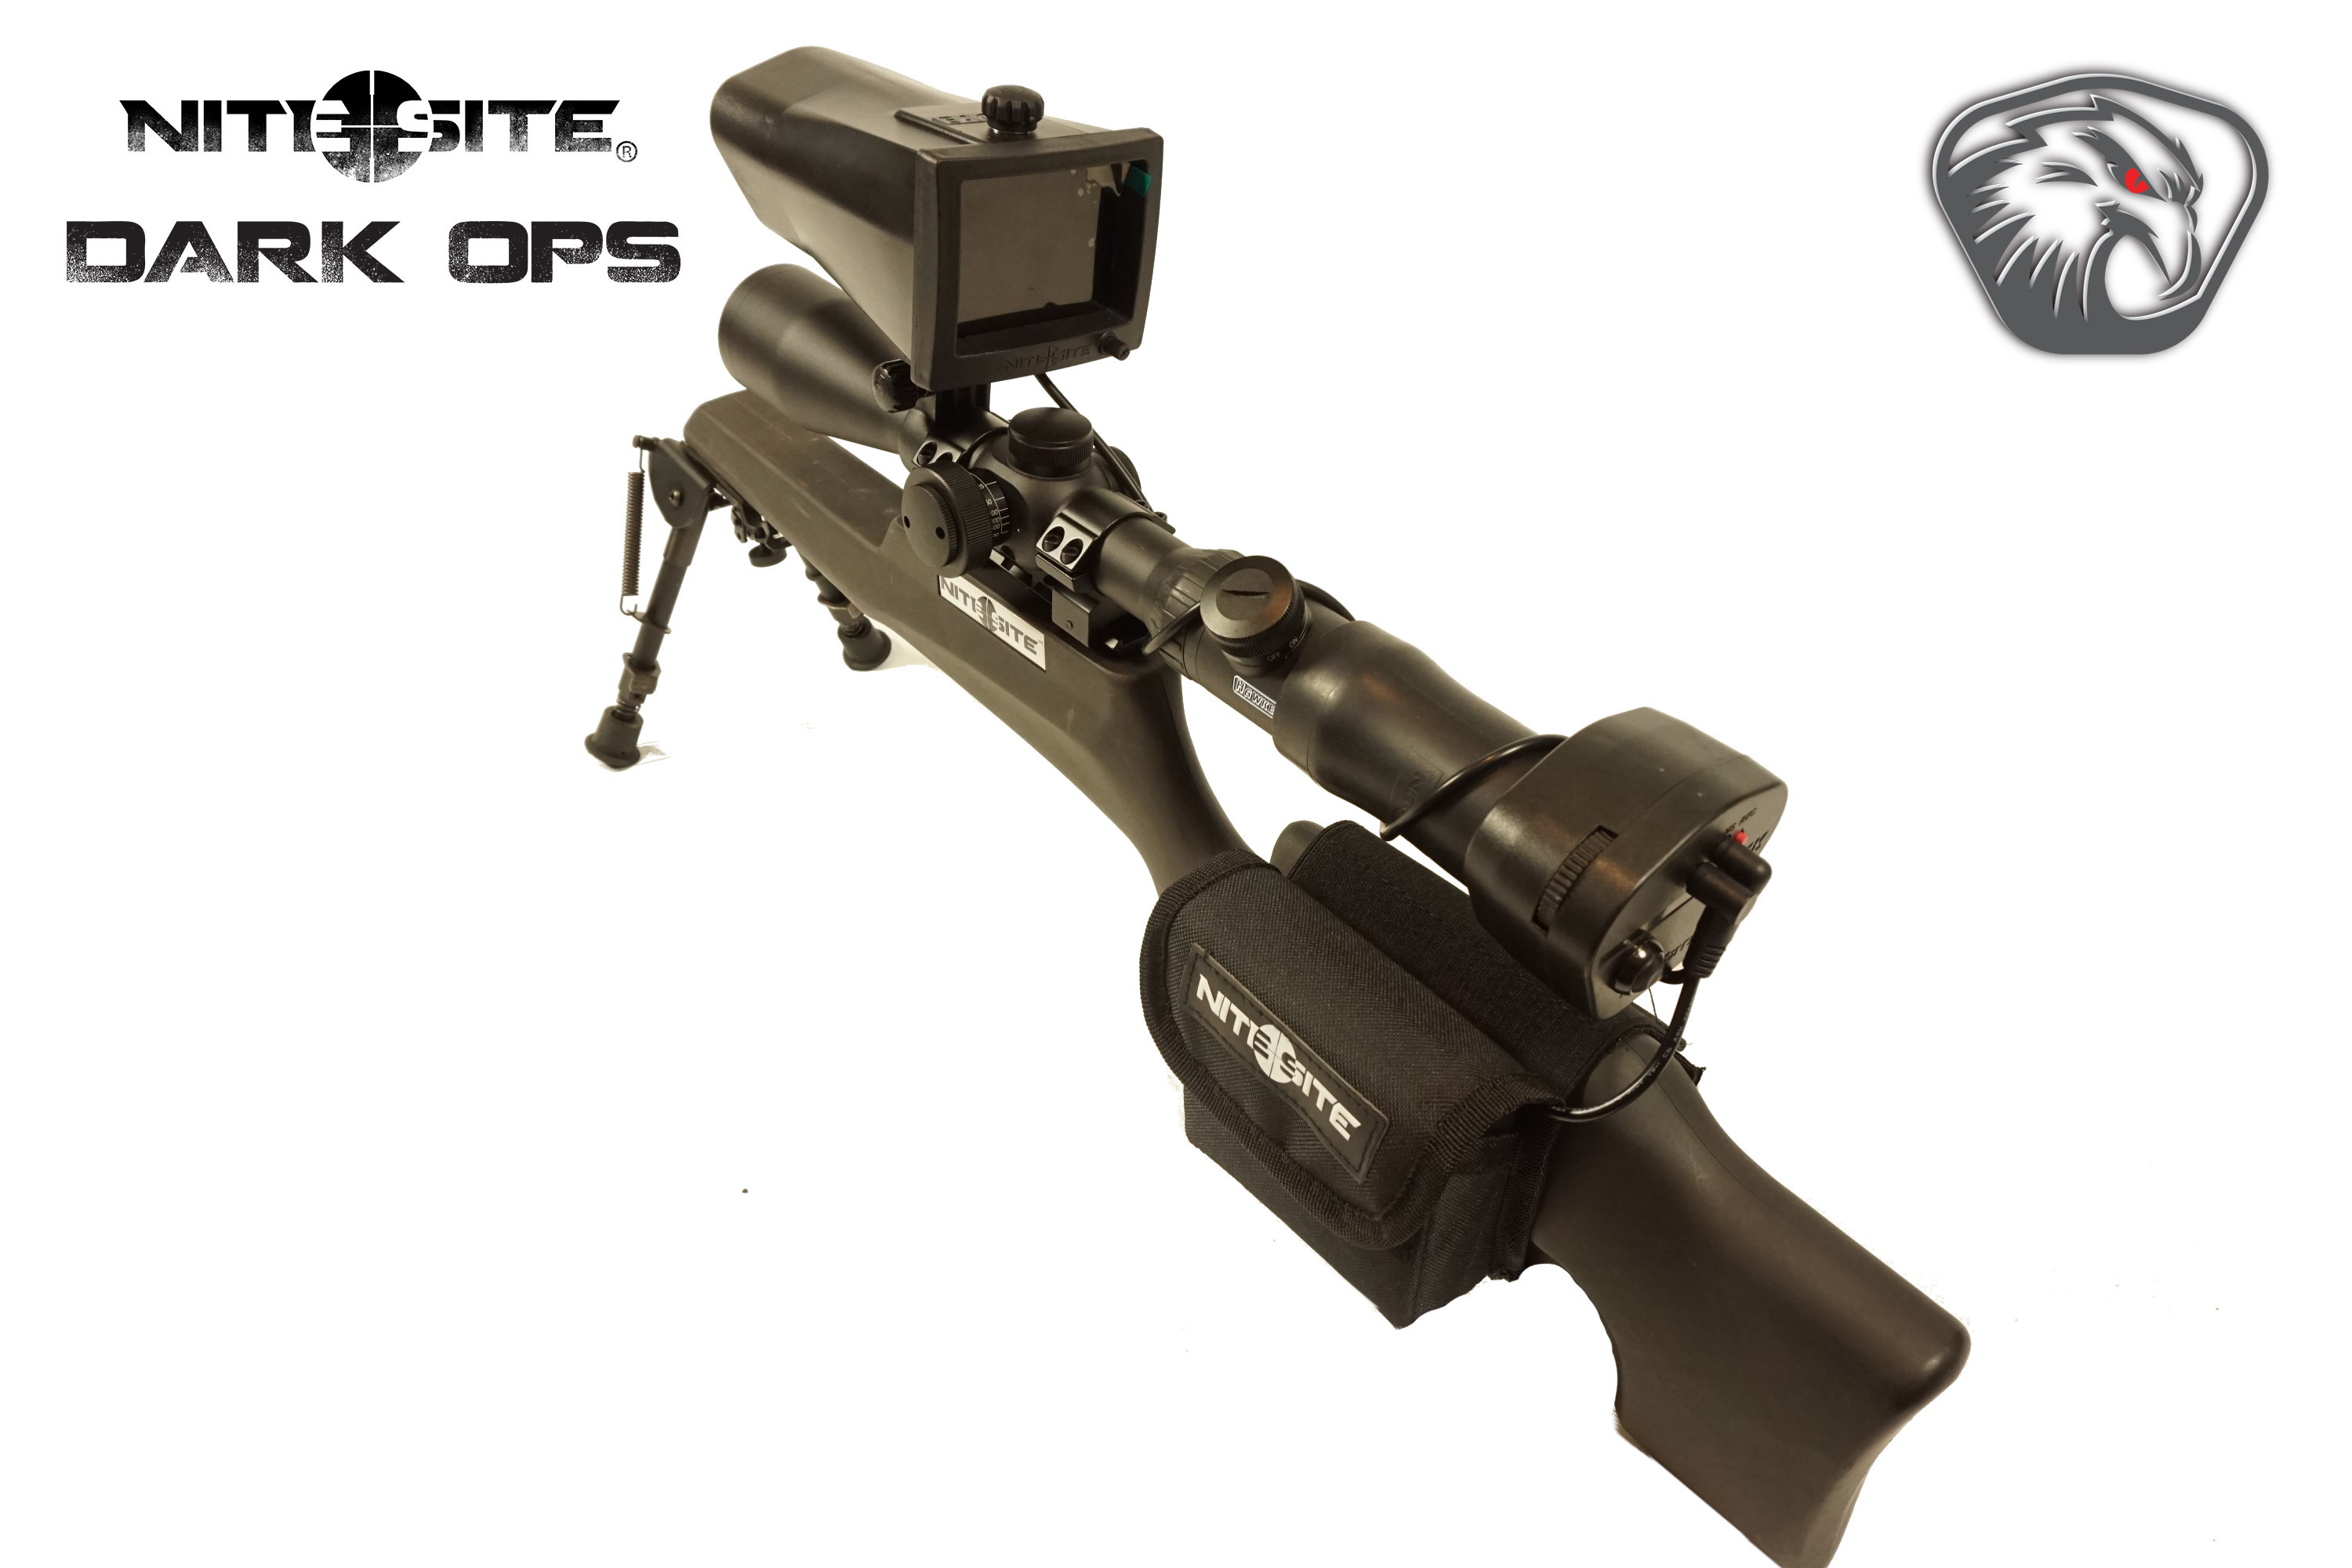 NiteSite® Unveils the Dark Ops and Dark Ops Elite at the 2018 NRA Annual Meetings and Exhibits in Dallas, Texas